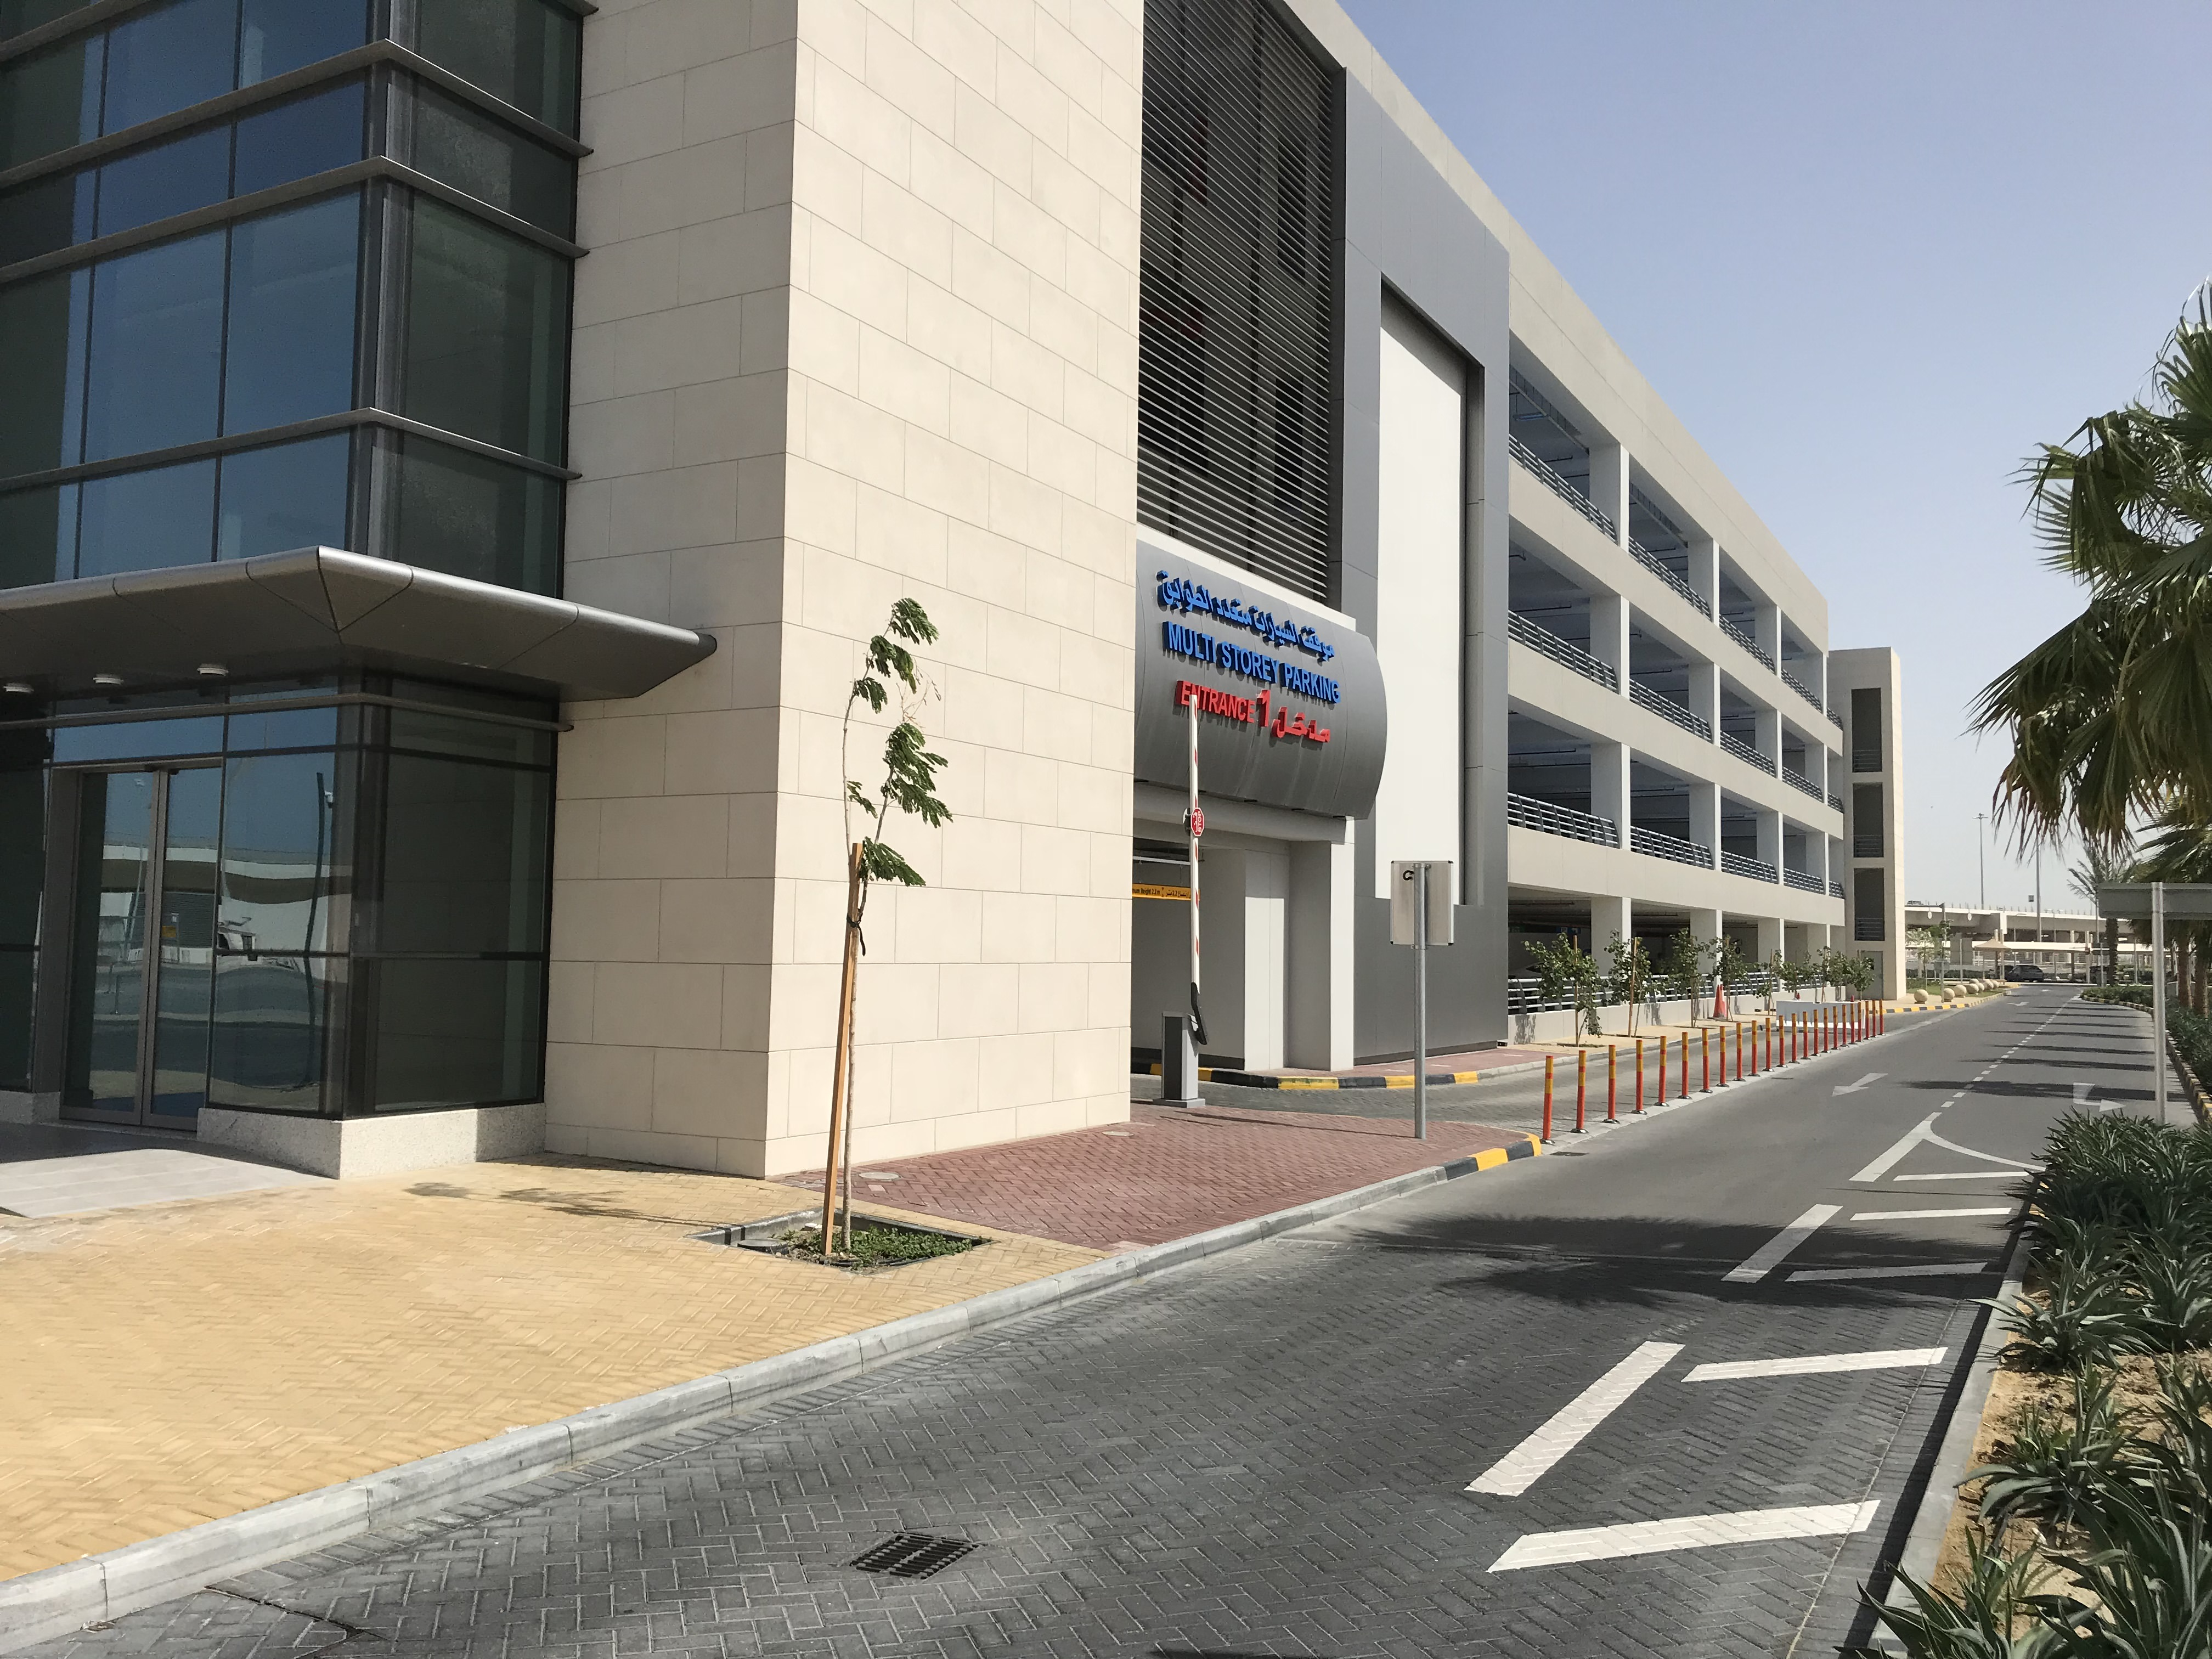 The Avenues Car Park Building Design And Supervision Services by MSCEB